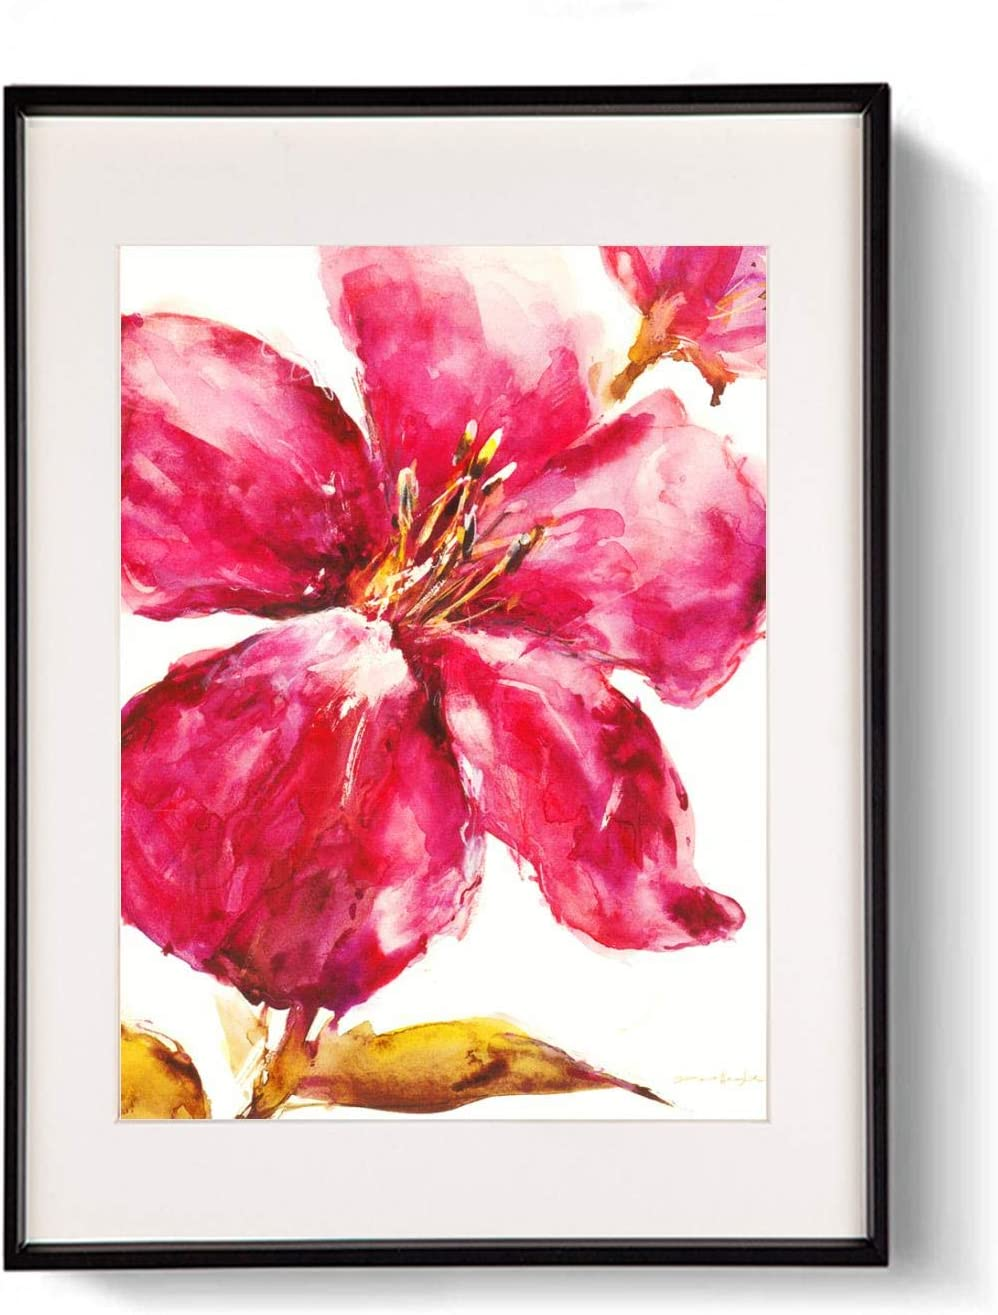 QEQWRTUI Modern Canvas Paintings Red Lily Paintings Modern Home Decor Wall Art Painting Colorful Wood Inside Framed Ready to Hang